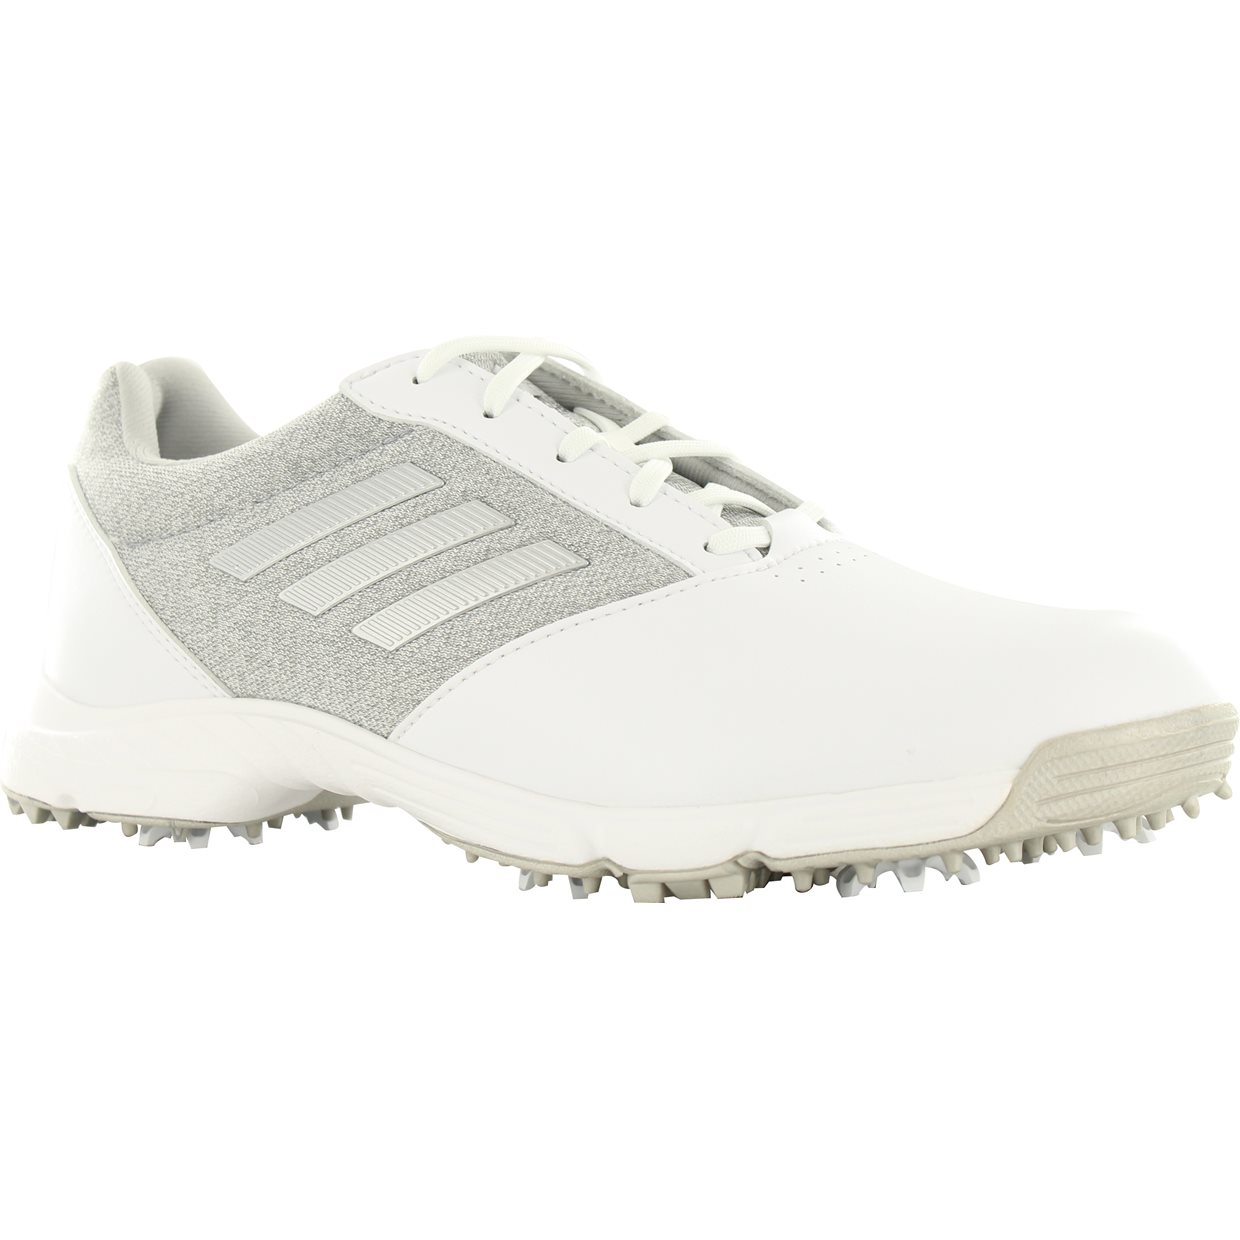 fdbec2442 Adidas Tech Response 2019 Ladies Golf Shoes at GlobalGolf.com